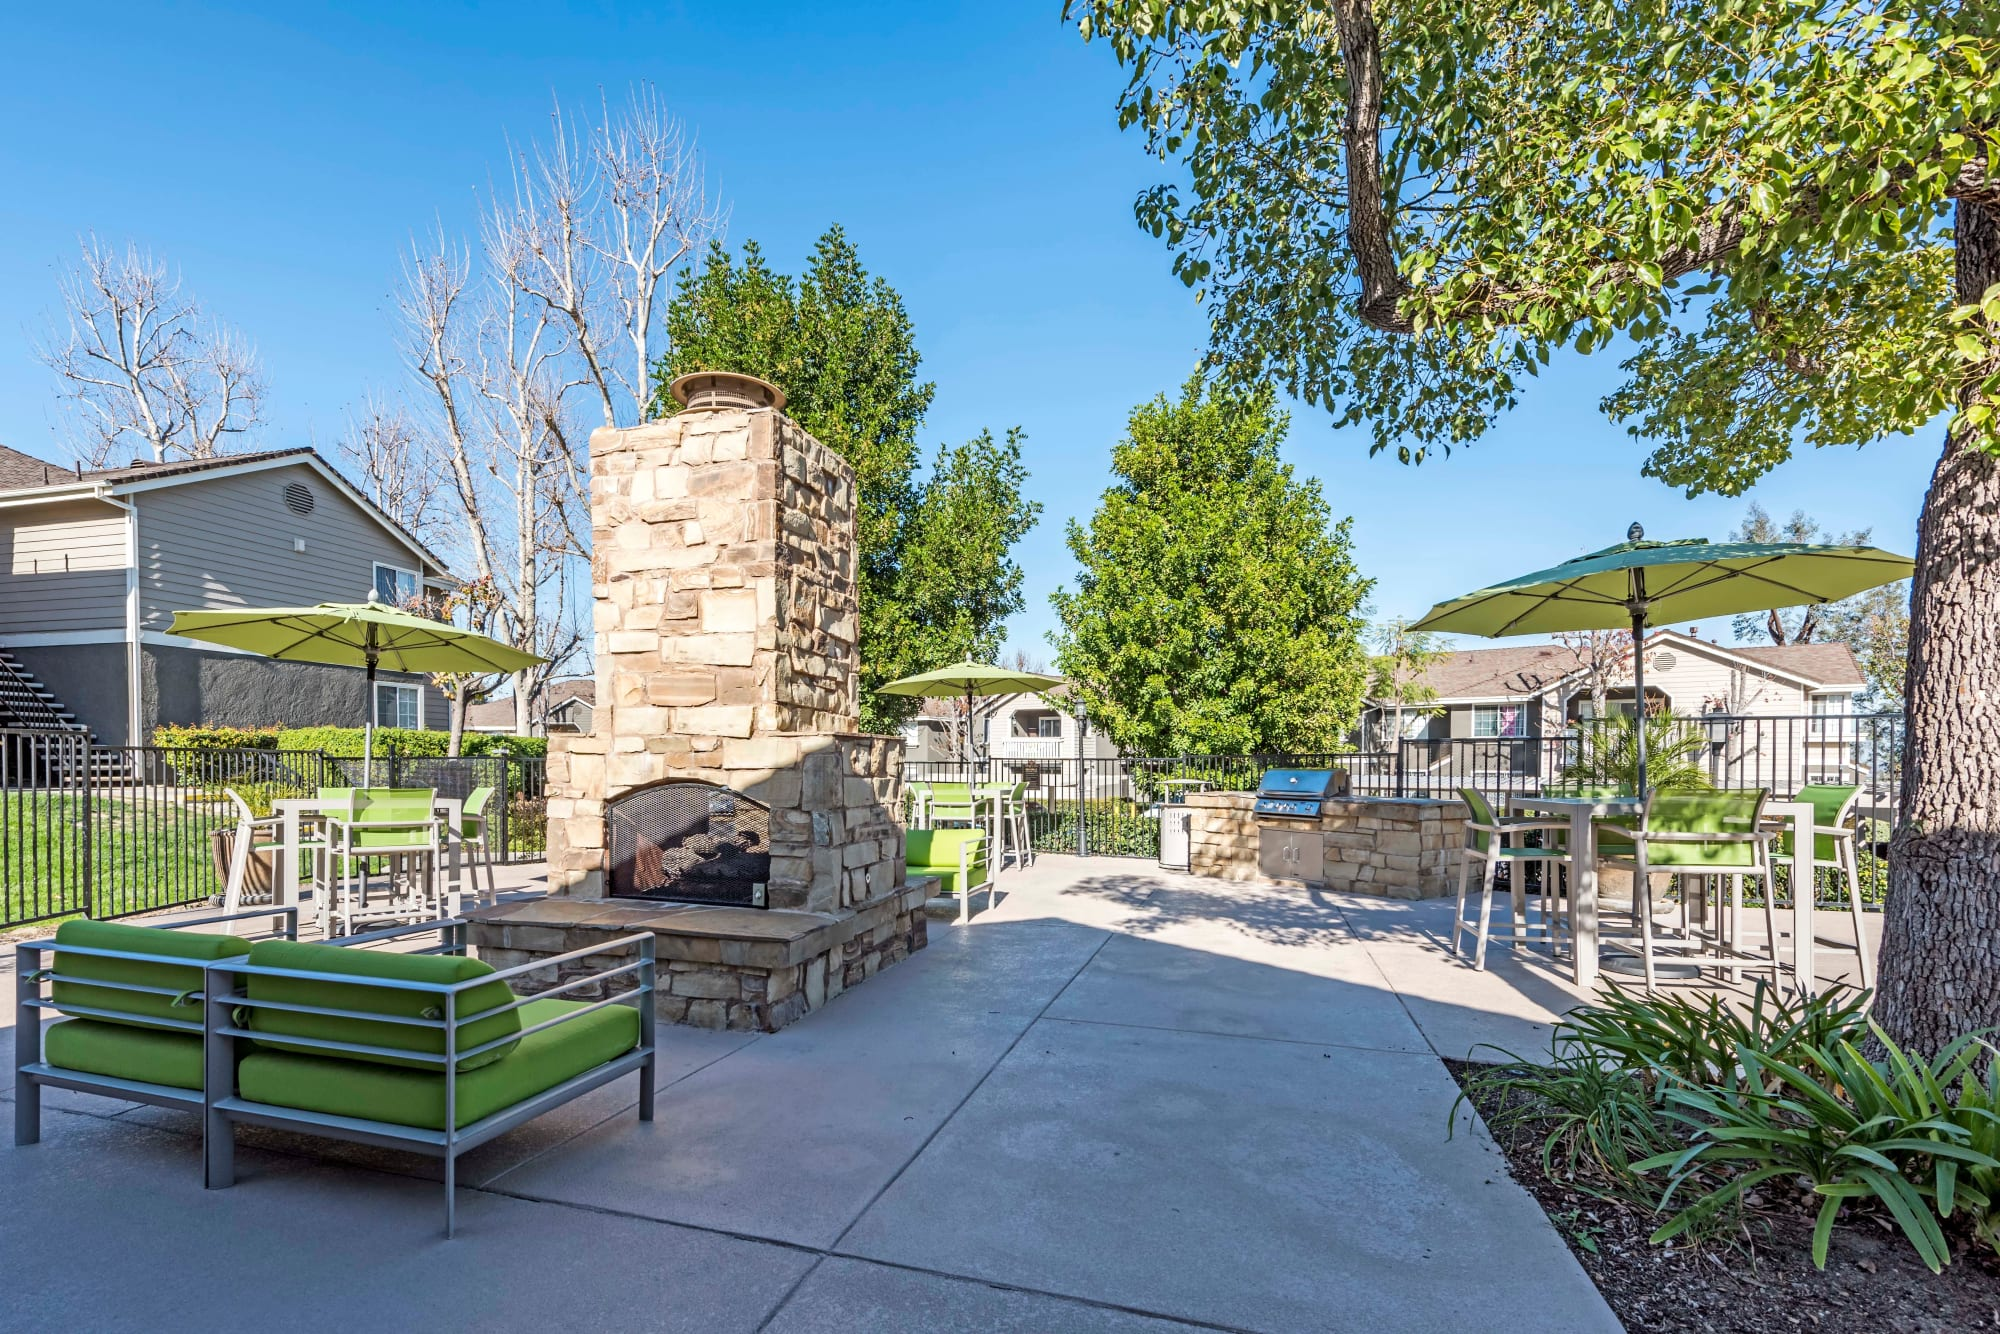 Outdoor fire pit lounge area at Village Oaks in Chino Hills, California